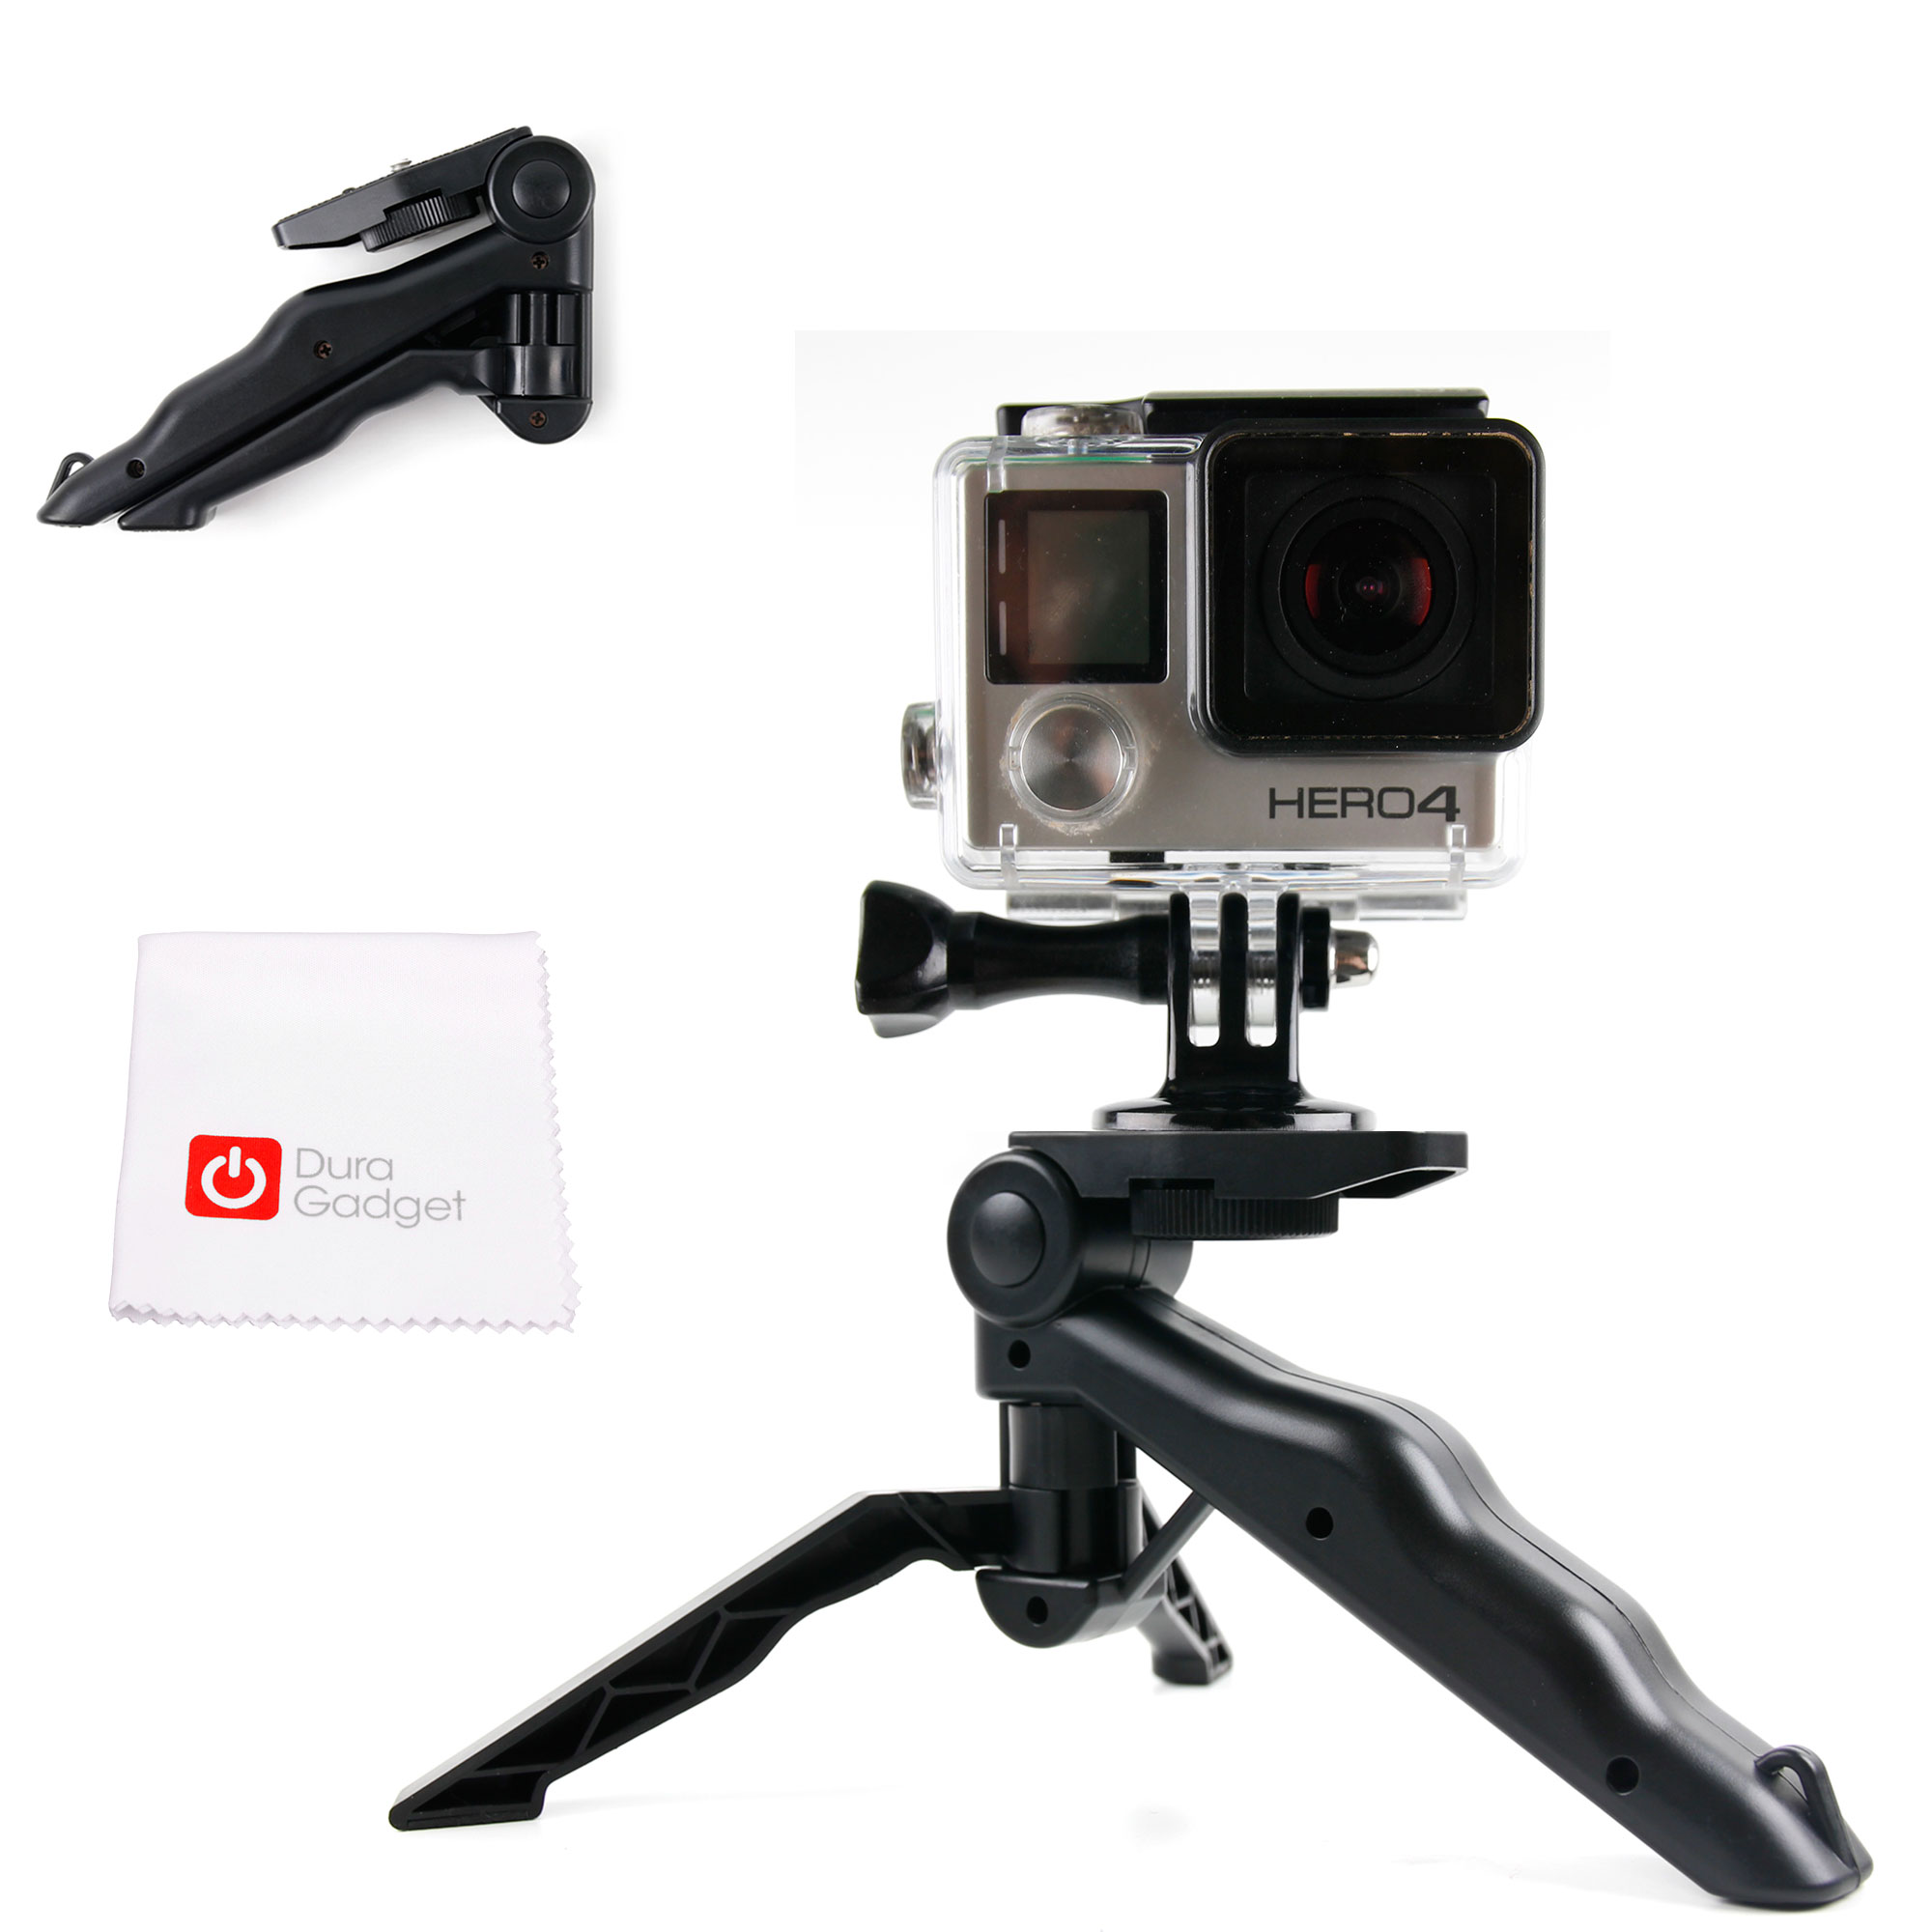 accessoires pour gopro 1 2 3 3 hd hero 4 hero lcd hero4 session ebay. Black Bedroom Furniture Sets. Home Design Ideas